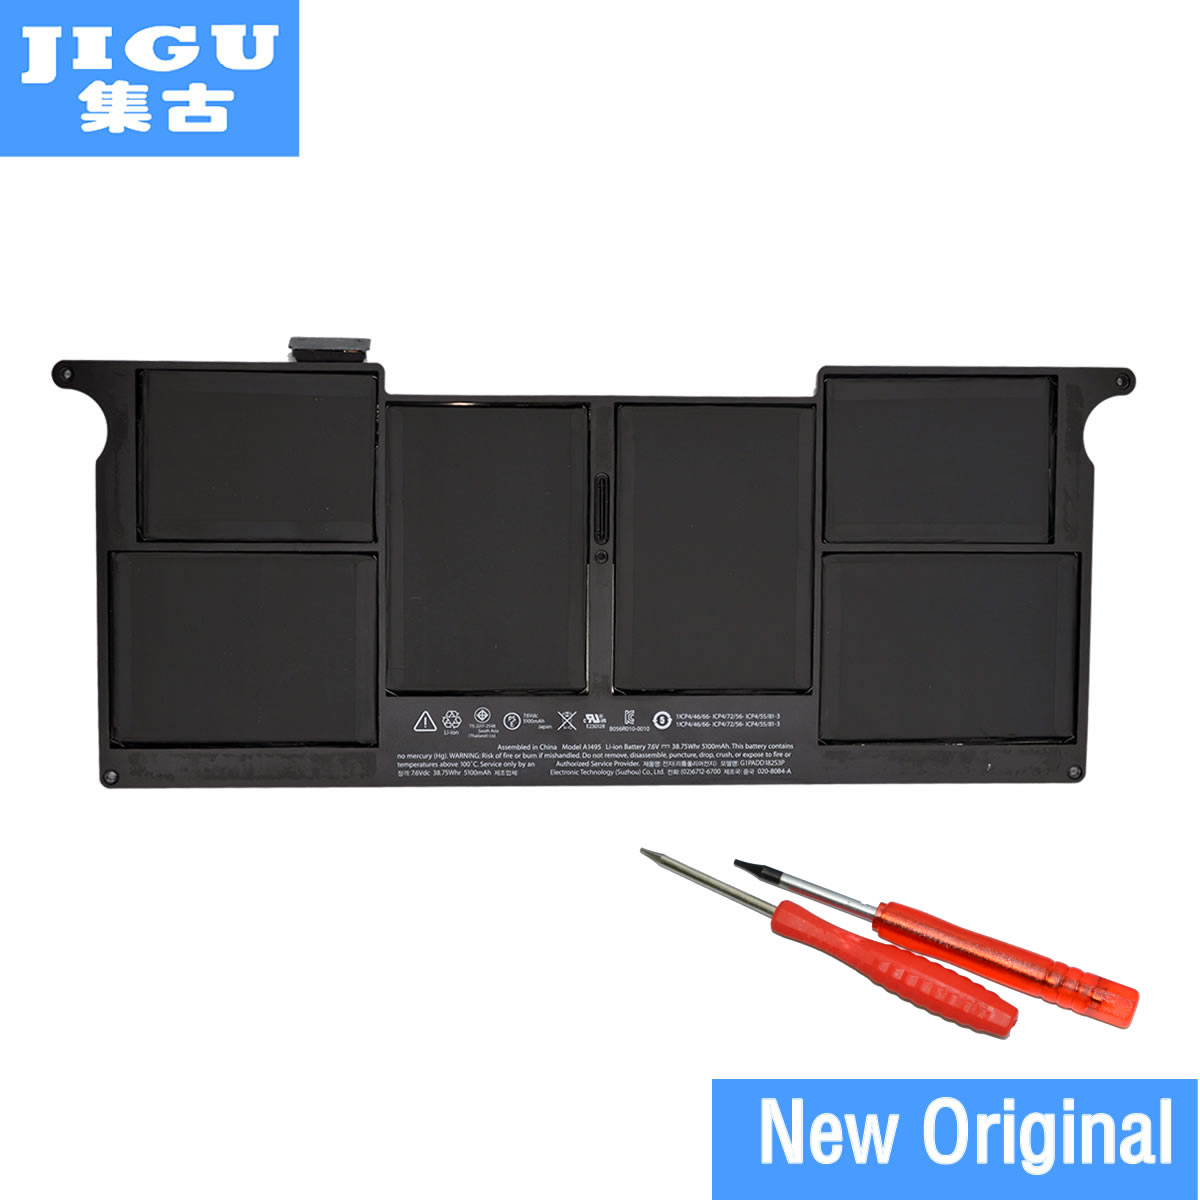 JIGU A1406 Neue laptop <font><b>Batterie</b></font> für Apple <font><b>MacBook</b></font> <font><b>Air</b></font> <font><b>11</b></font>